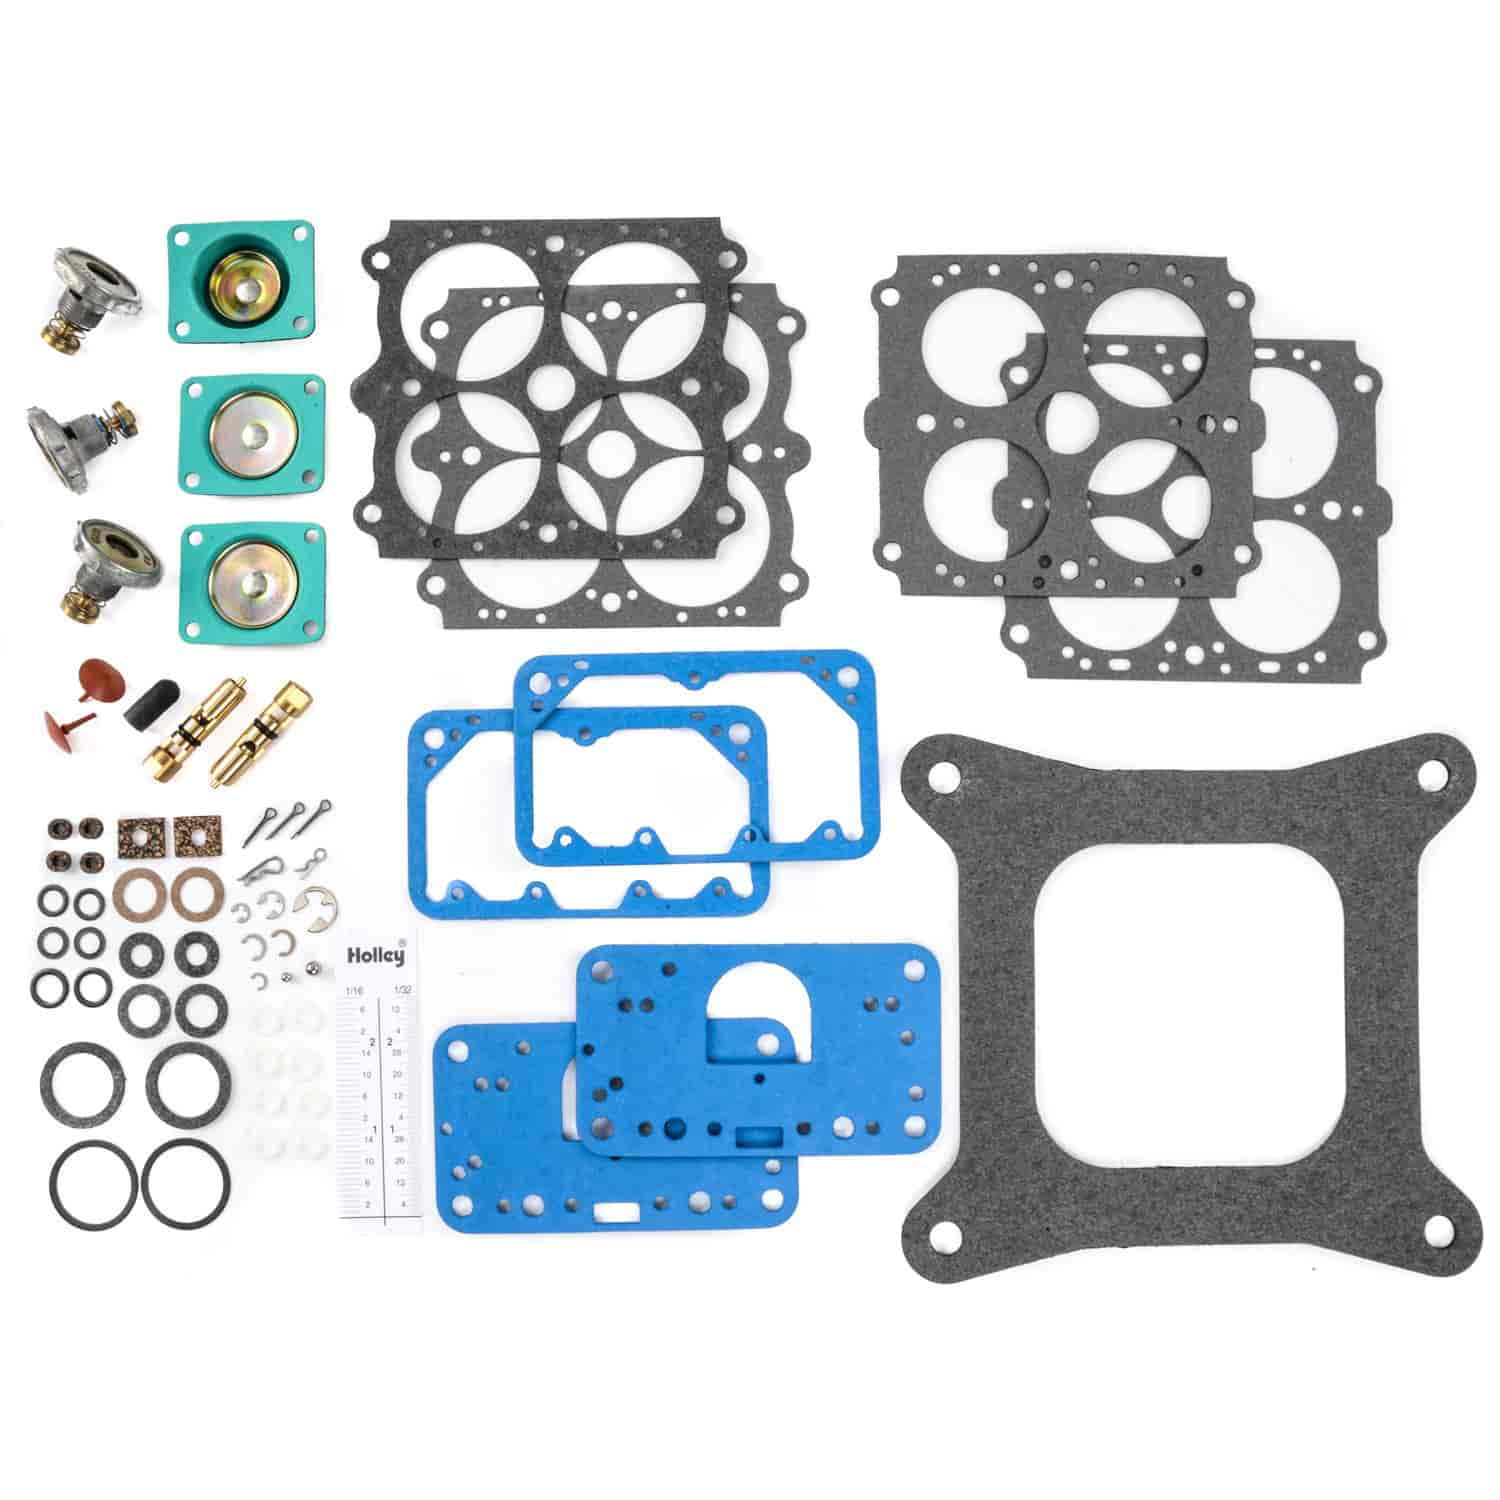 Holley 37-485 - Holley Carburetor Rebuild Kits